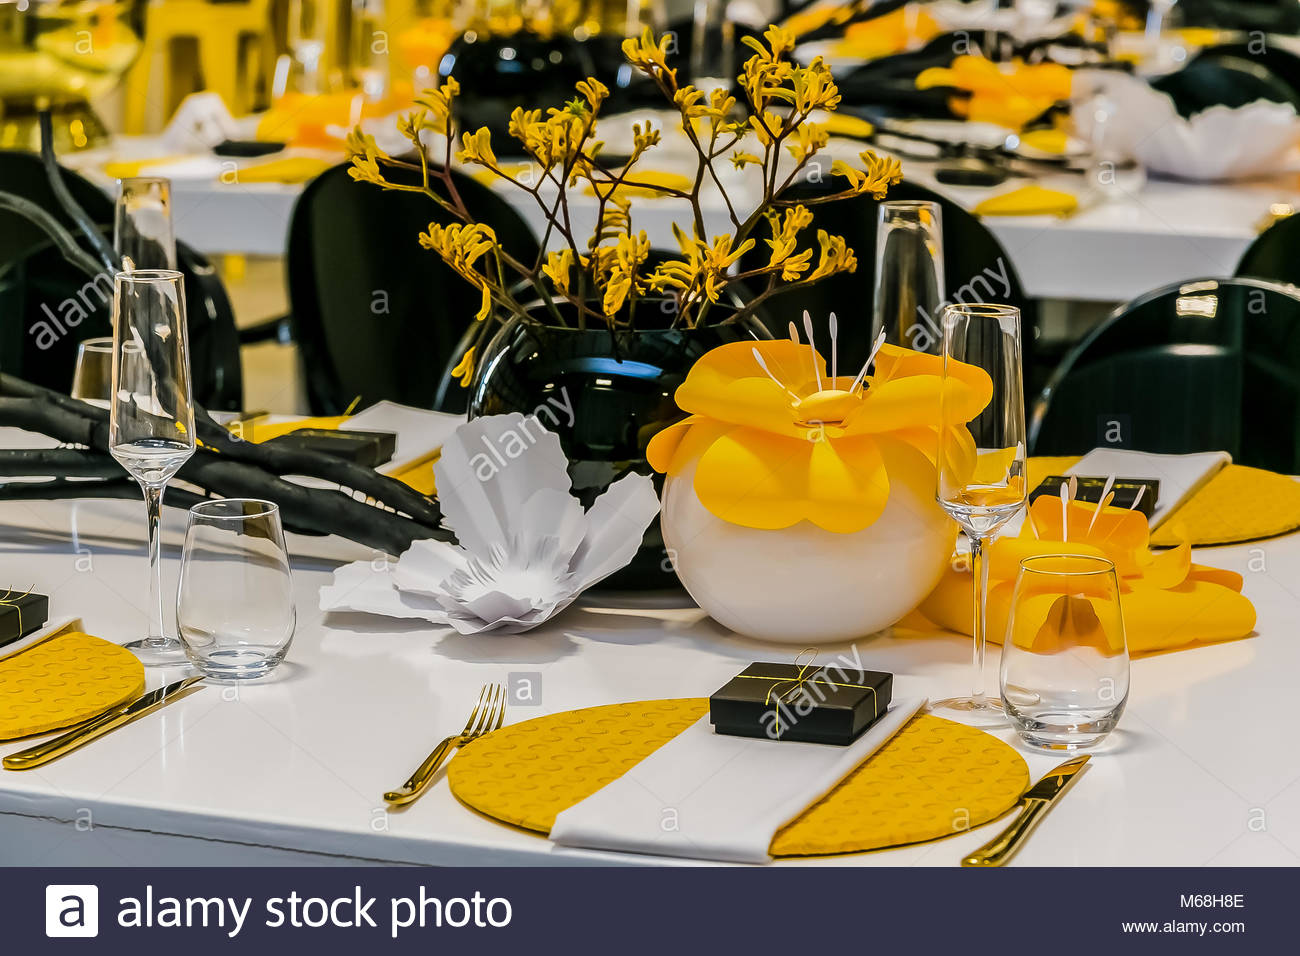 Yellow black and white table setting and decor for gala dinner or event for Spring Festival & Yellow black and white table setting and decor for gala dinner or ...